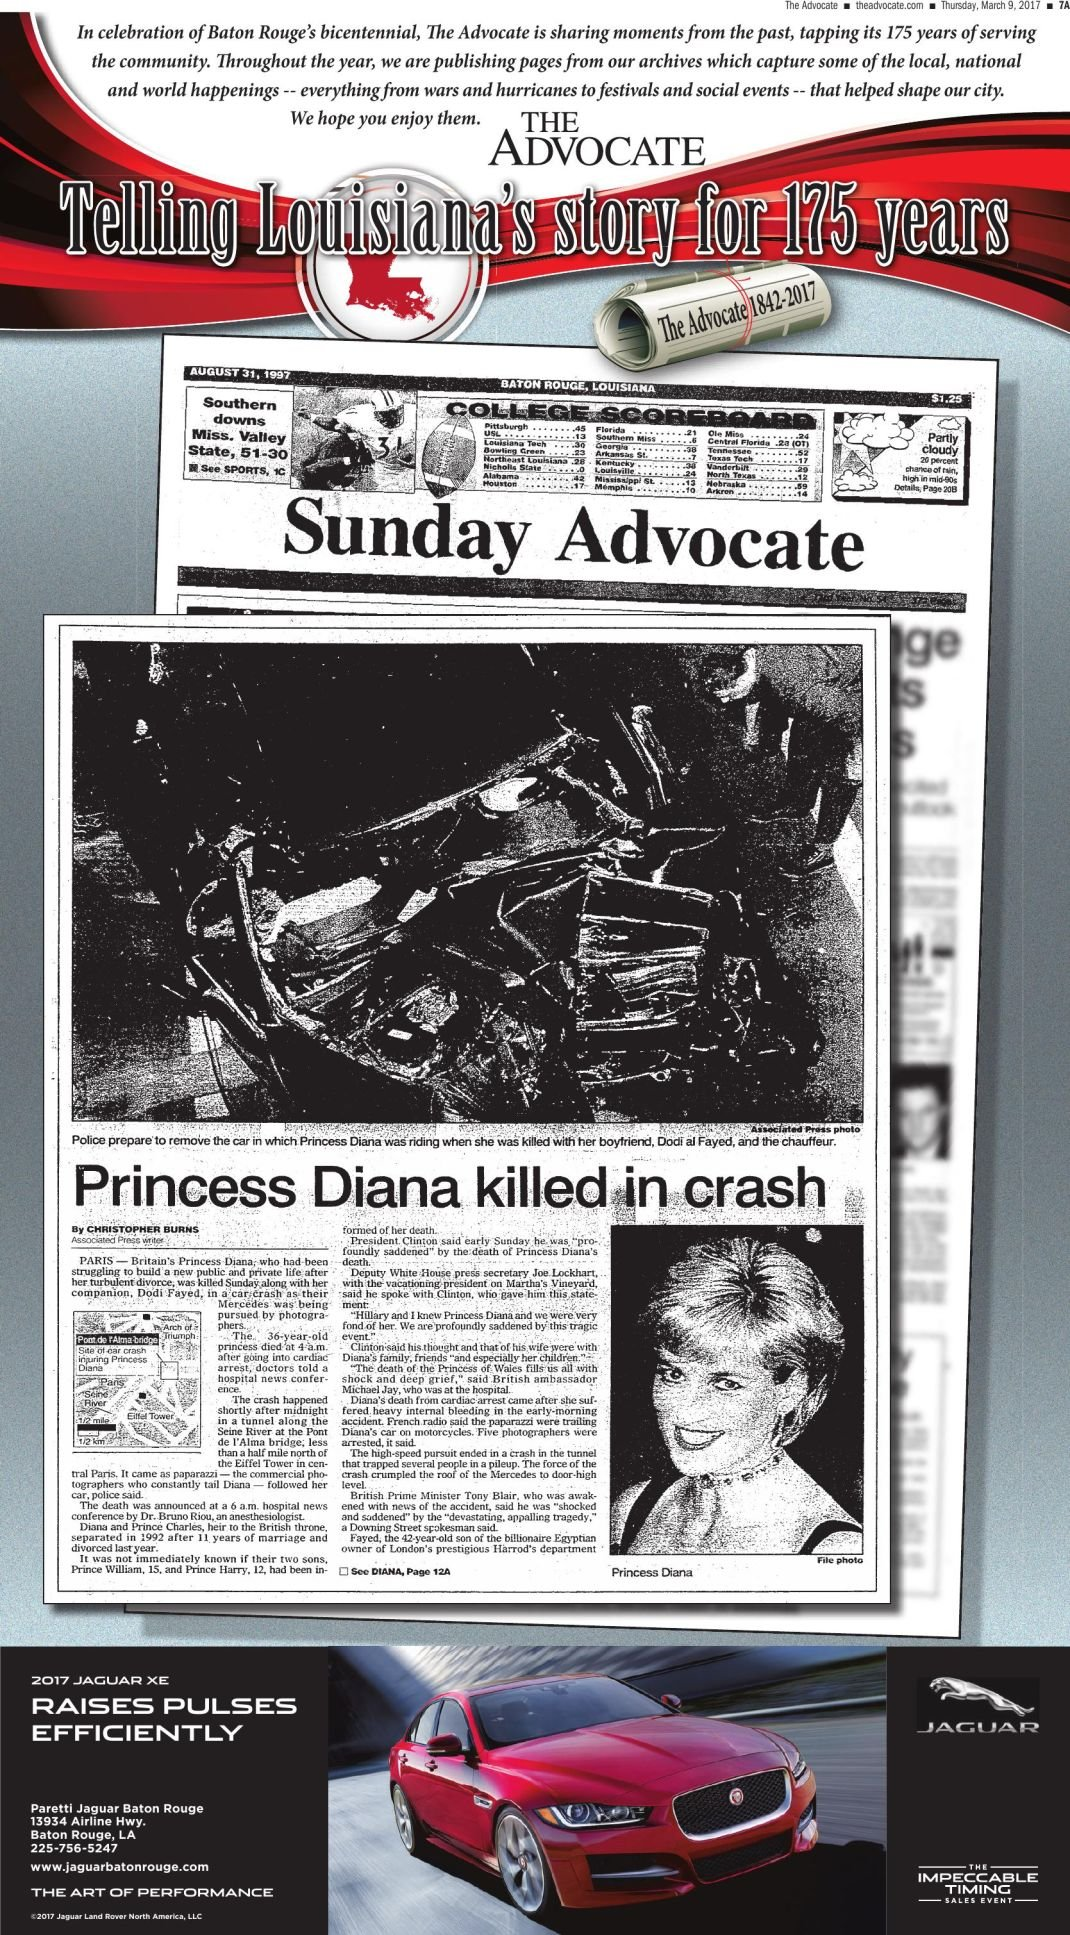 Princess Diana killed in crash